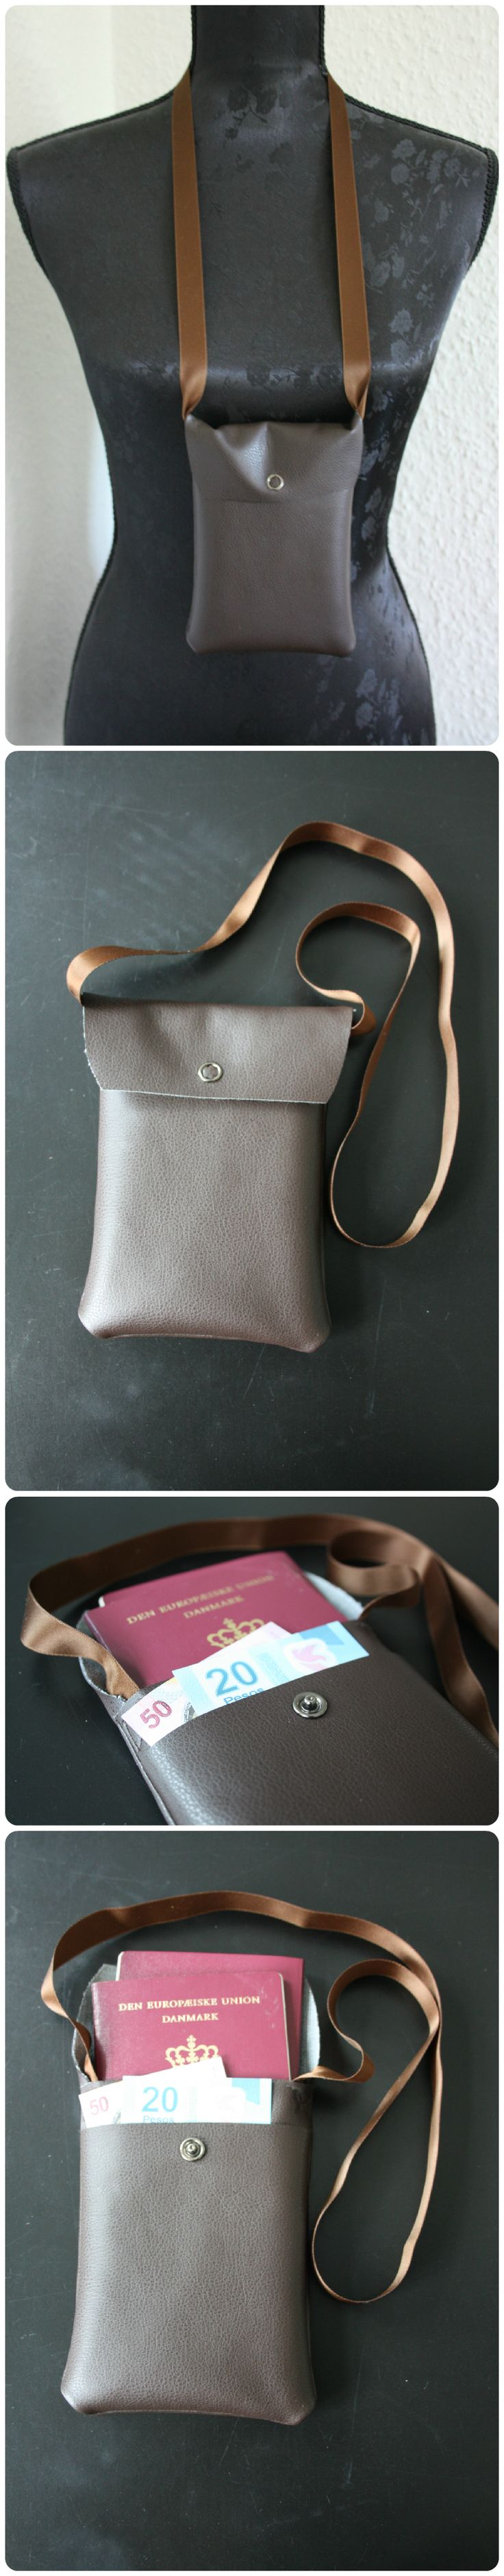 Passport and money neck purse | Faux leather | Mogina Accessories